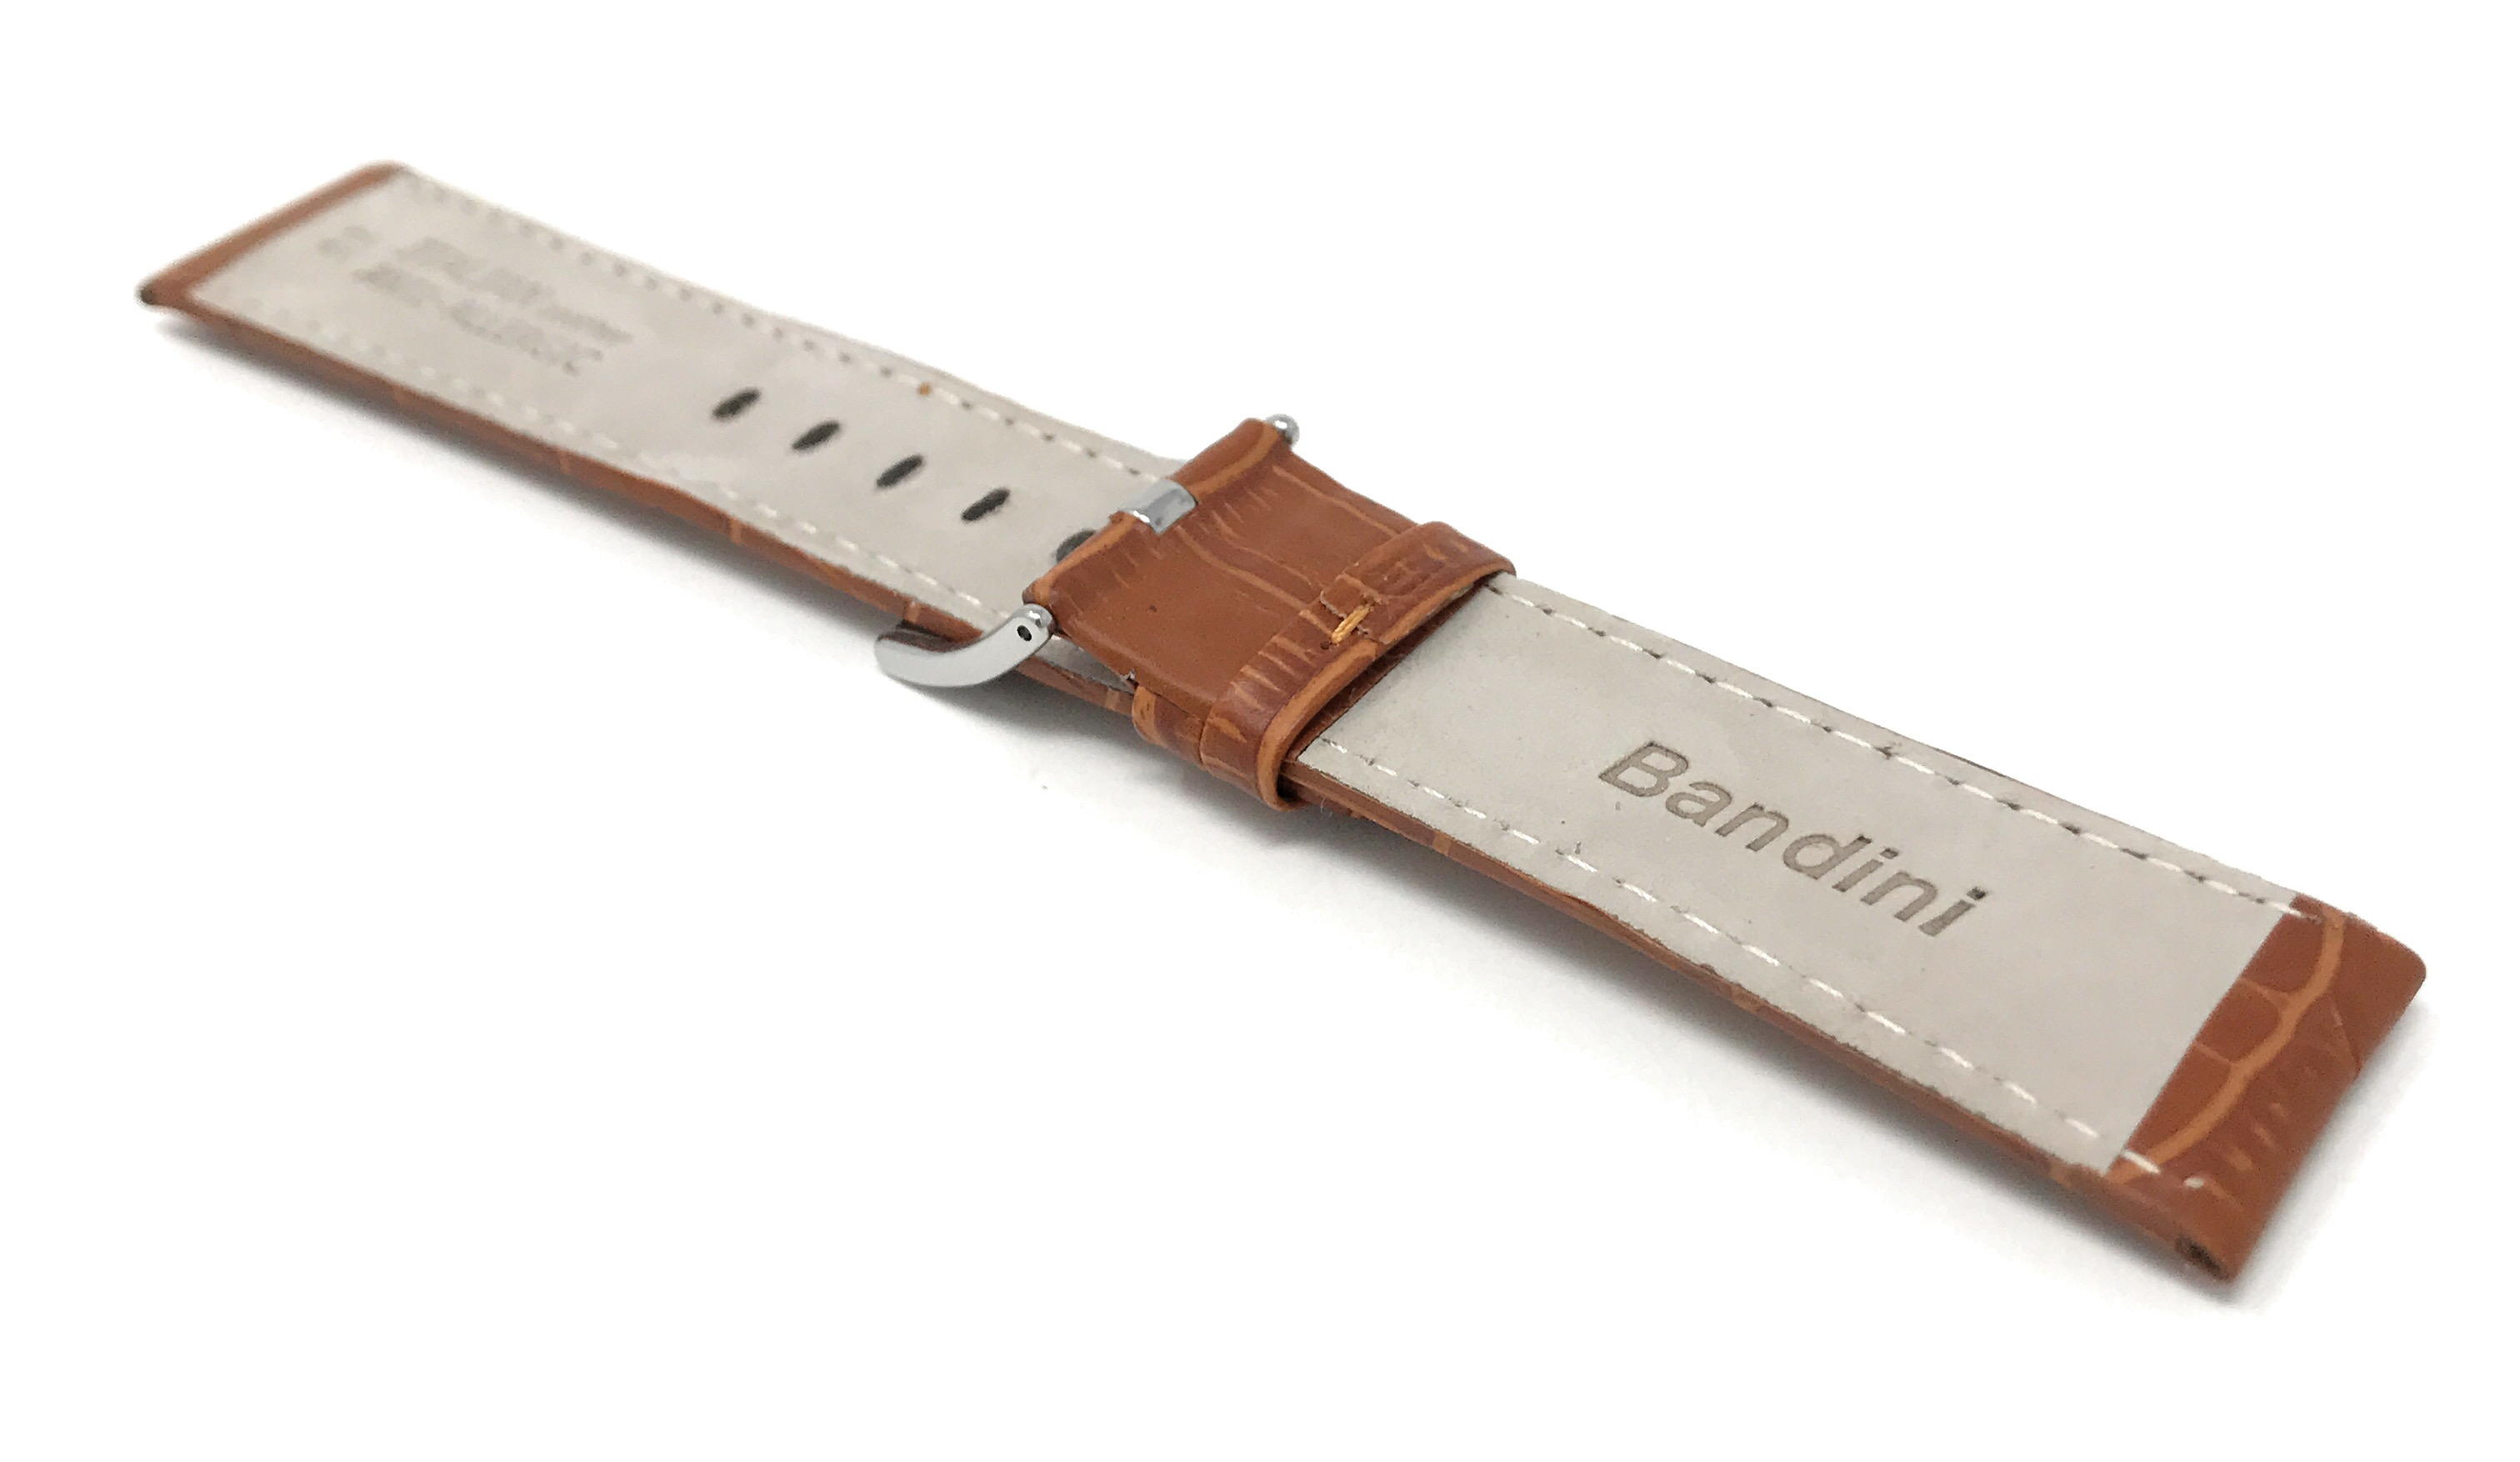 Bandini-Mens-Watch-Band-Alligator-Style-Leather-Strap-18mm-26mm-15-Colors thumbnail 46